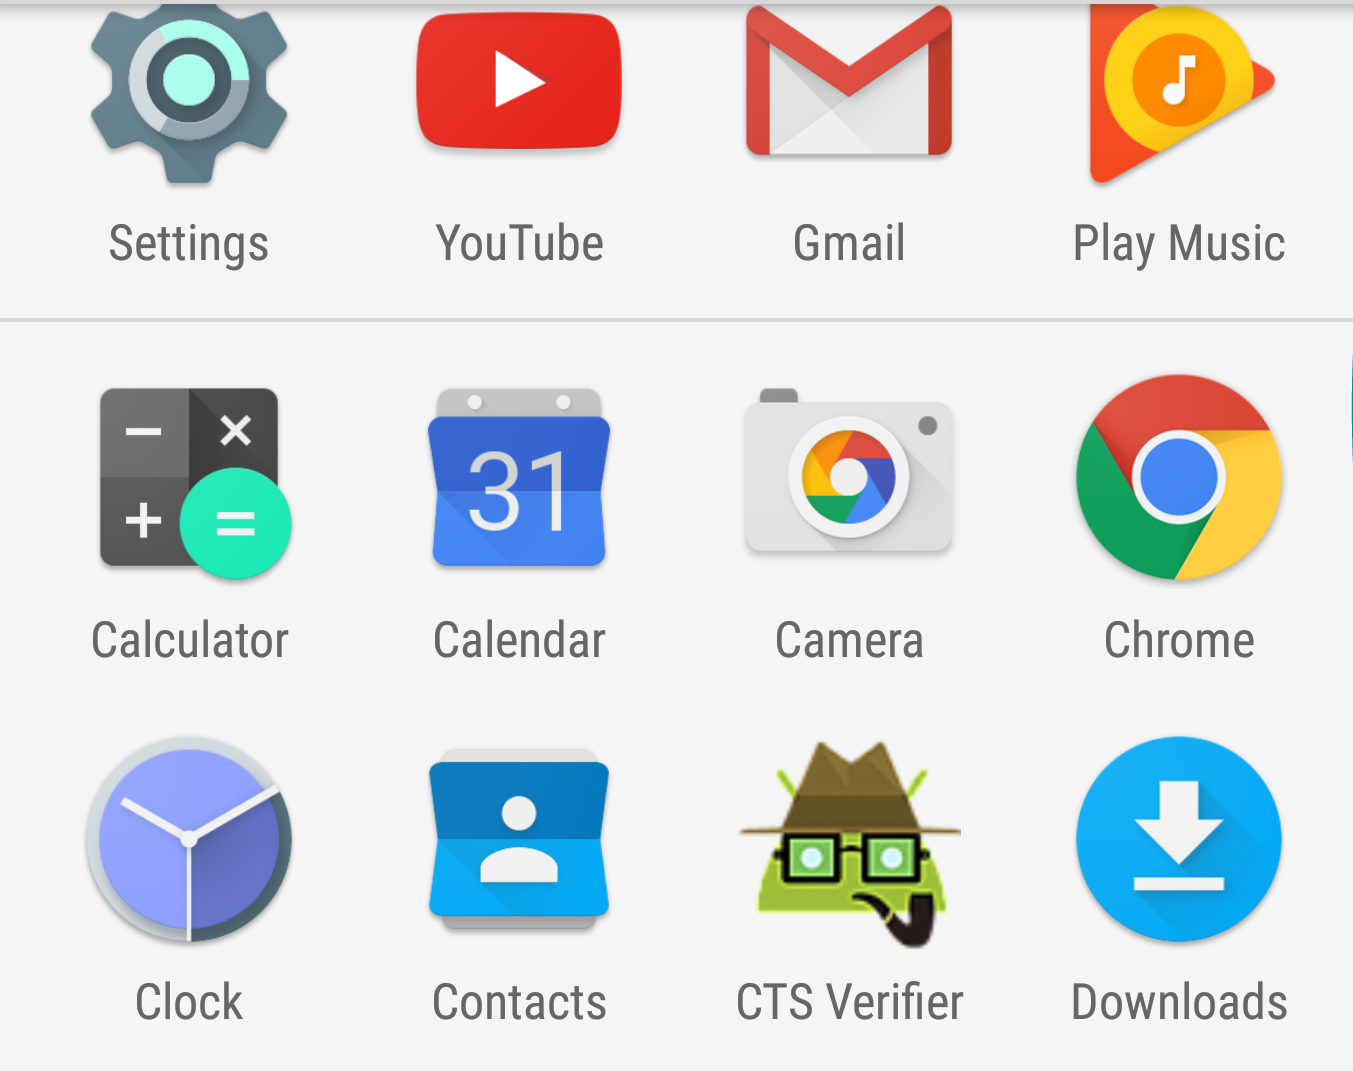 CTS Verifier icon in launcher